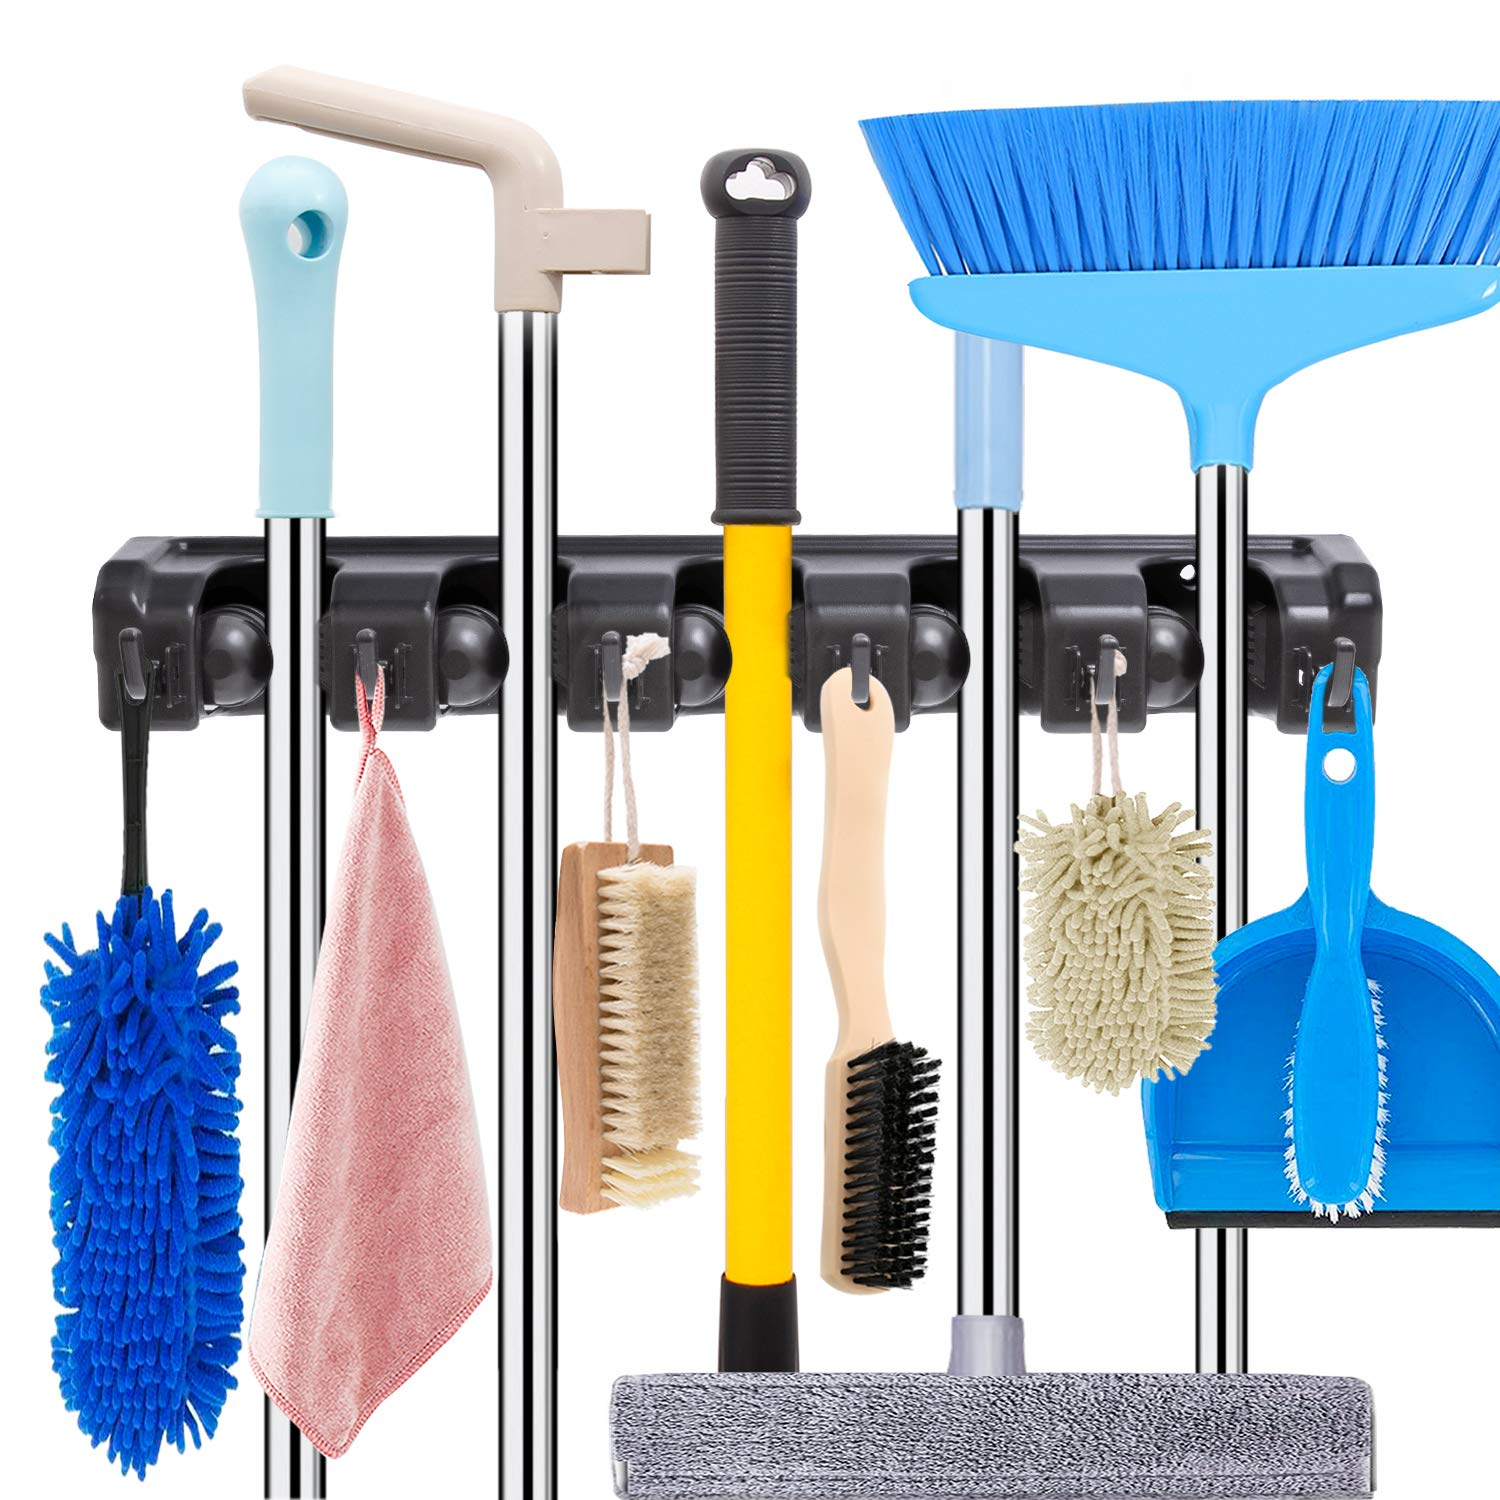 Mop and Broom Holder Wall Mount Heavy Duty Broom Holder Wall Mounted Broom Organizer Home Garden Garage Storage Rack 5 Position with 6 Hooks (Black)